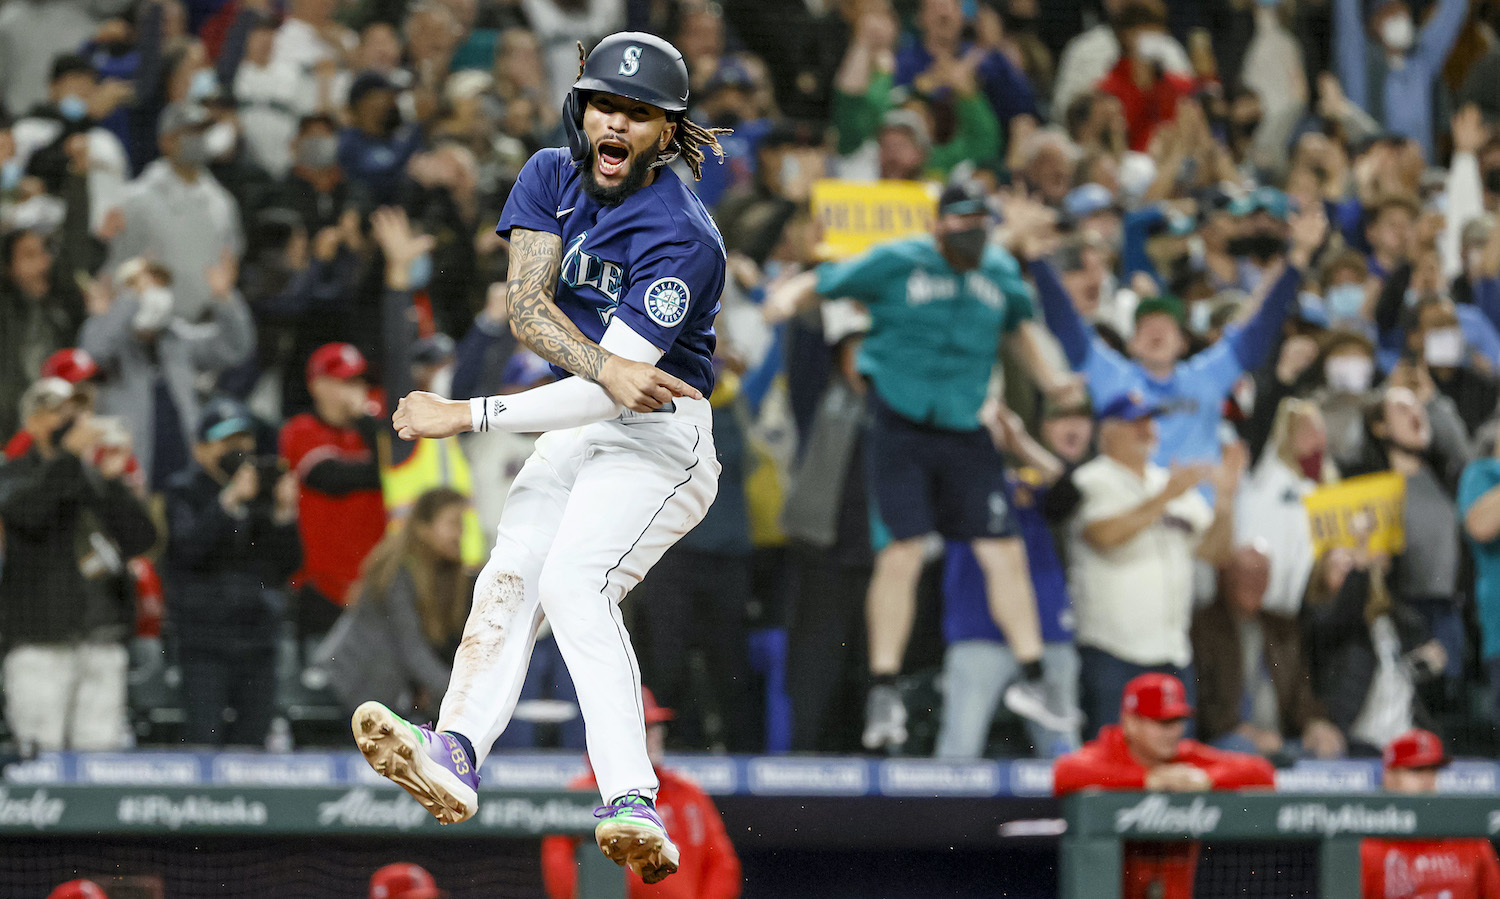 SEATTLE, WASHINGTON - OCTOBER 02: J.P. Crawford #3 of the Seattle Mariners reacts after scoring on a single by Mitch Haniger #17 during the eighth inning against the Los Angeles Angels at T-Mobile Park on October 02, 2021 in Seattle, Washington. (Photo by Steph Chambers/Getty Images)